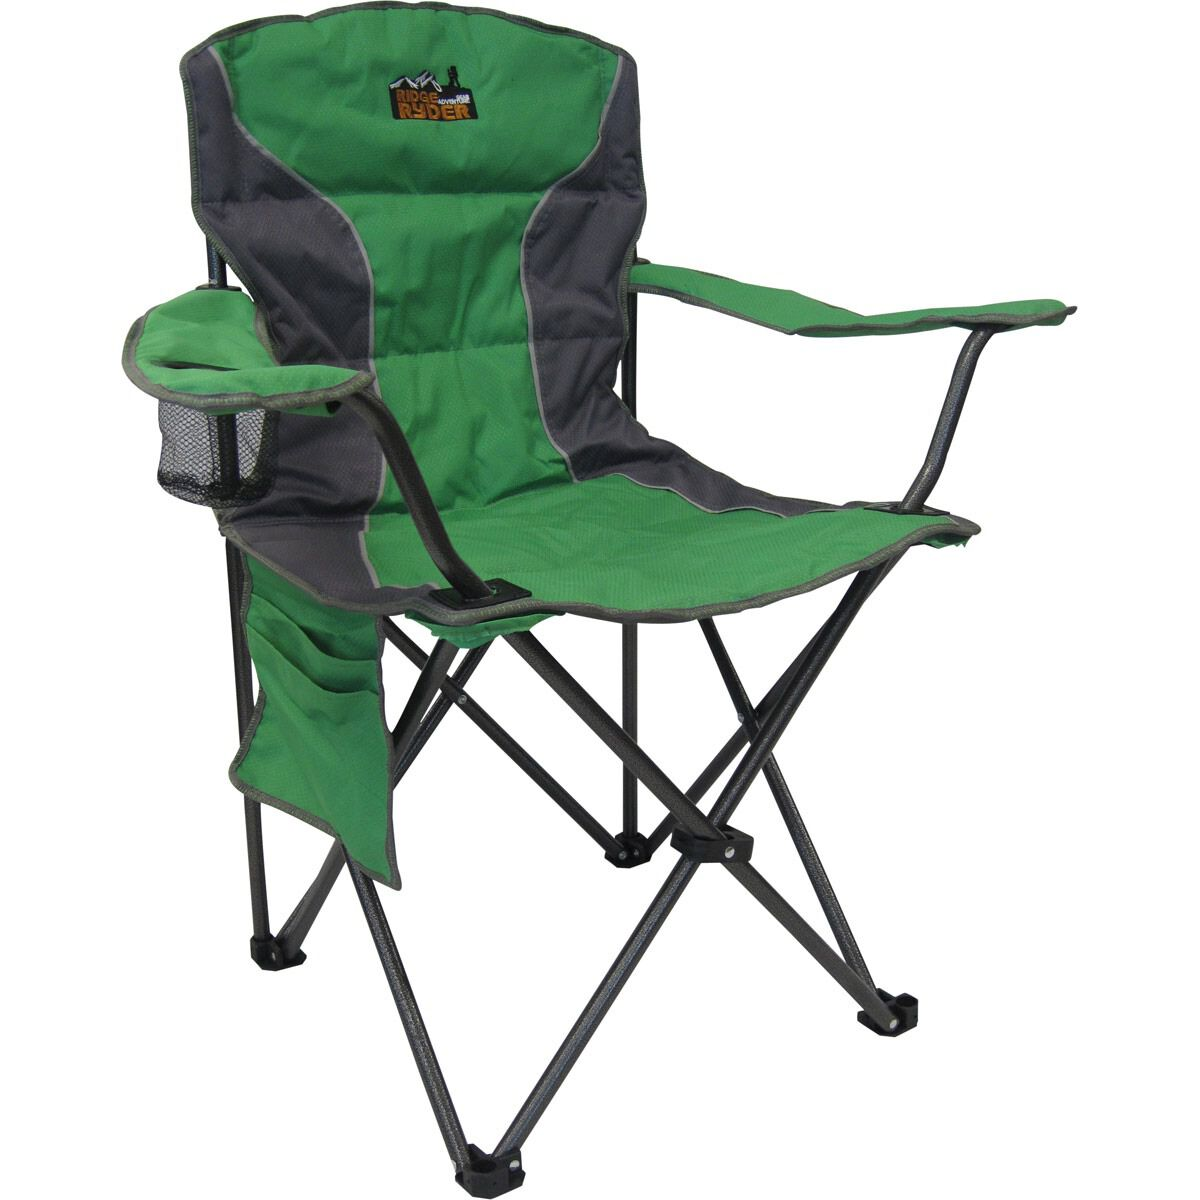 folding chair emoji twin sleeper with ottoman ridge ryder stirling camping 120kg supercheap auto scaau hi res